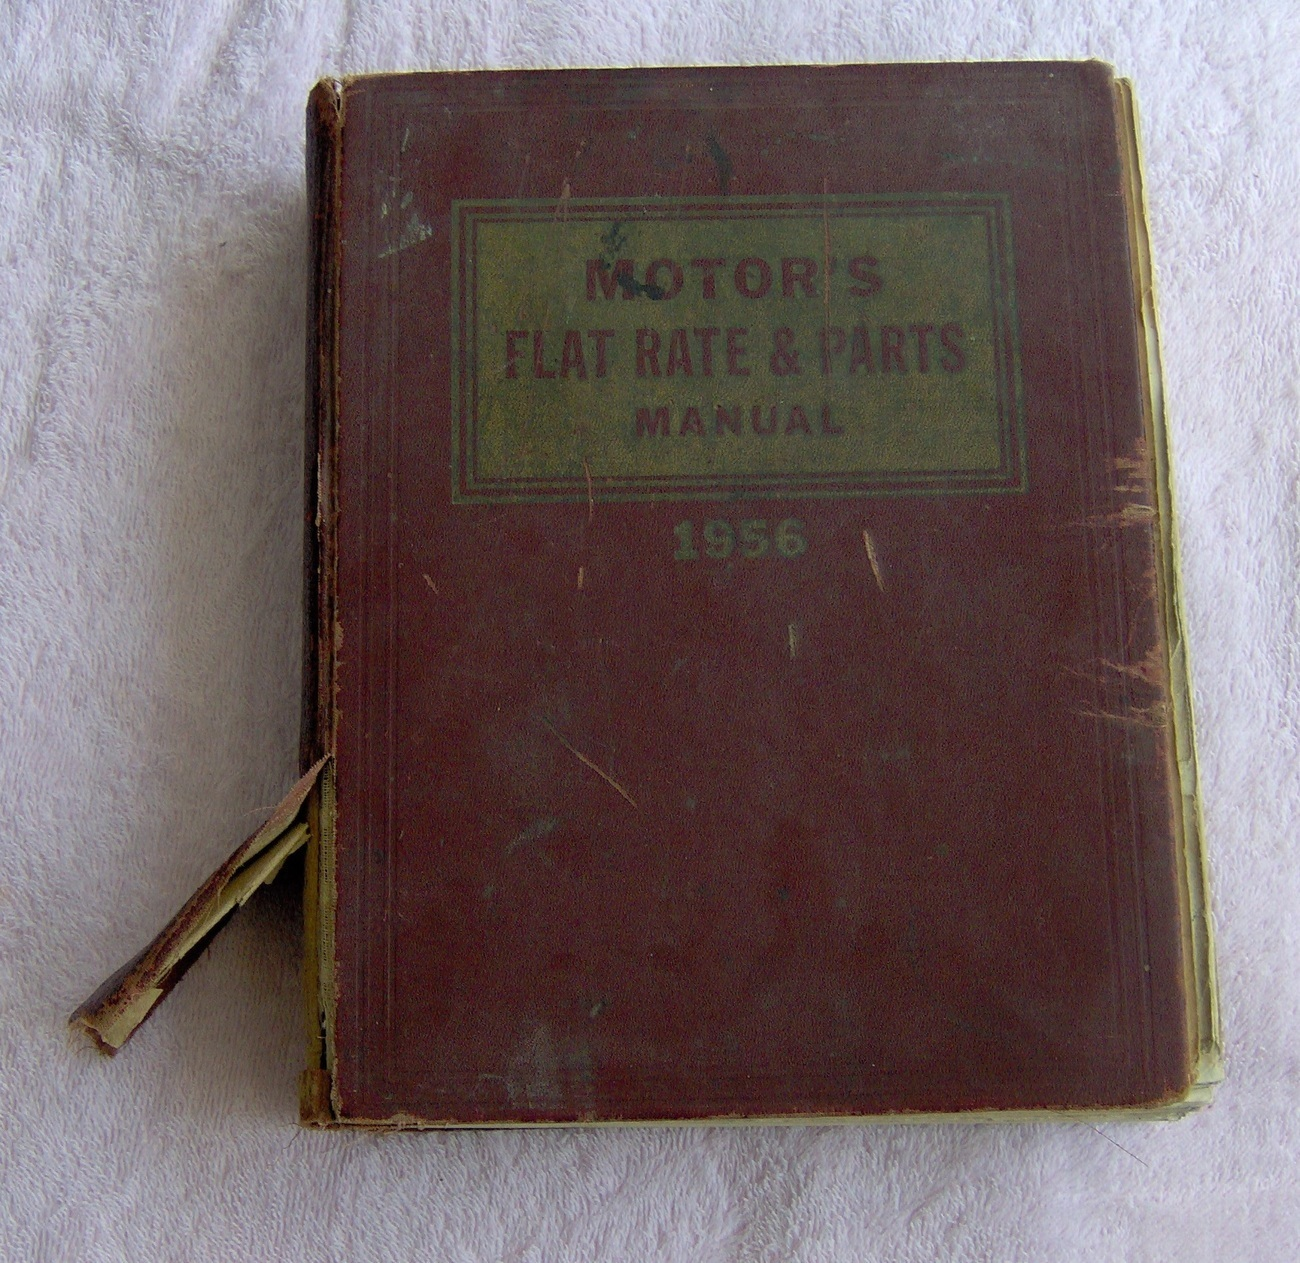 1956 motors flat rate and parts manual and 50 similar items 1956 motors flat rate and parts manual automotive book hardcover fandeluxe Images